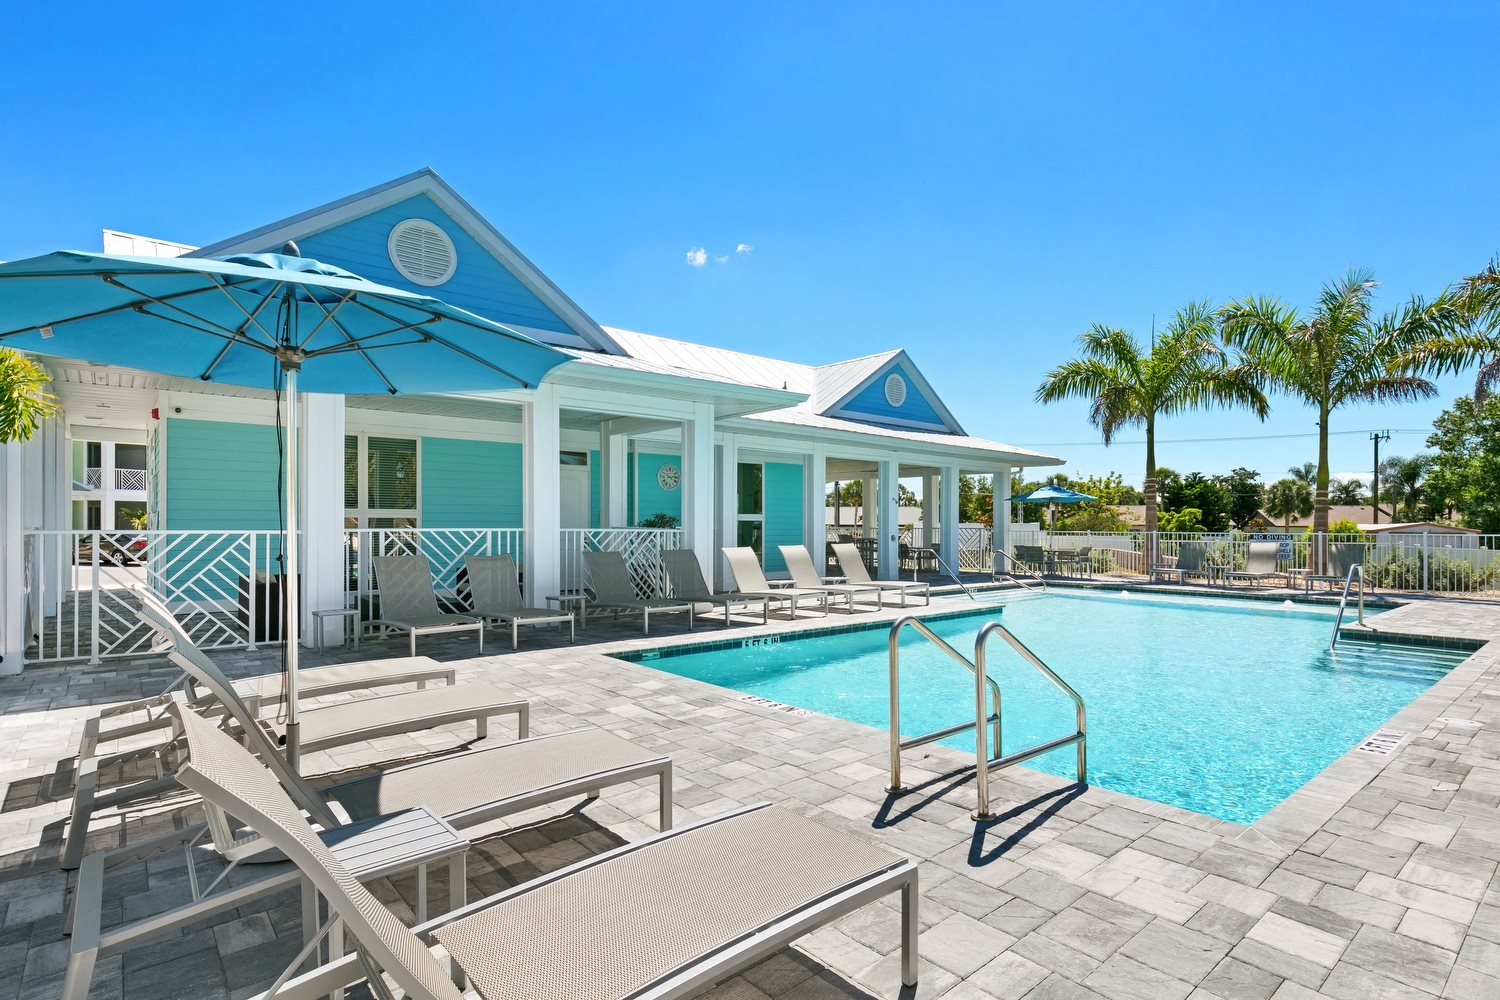 Photos and Video of Lemon Bay Apartments in Englewood, FL